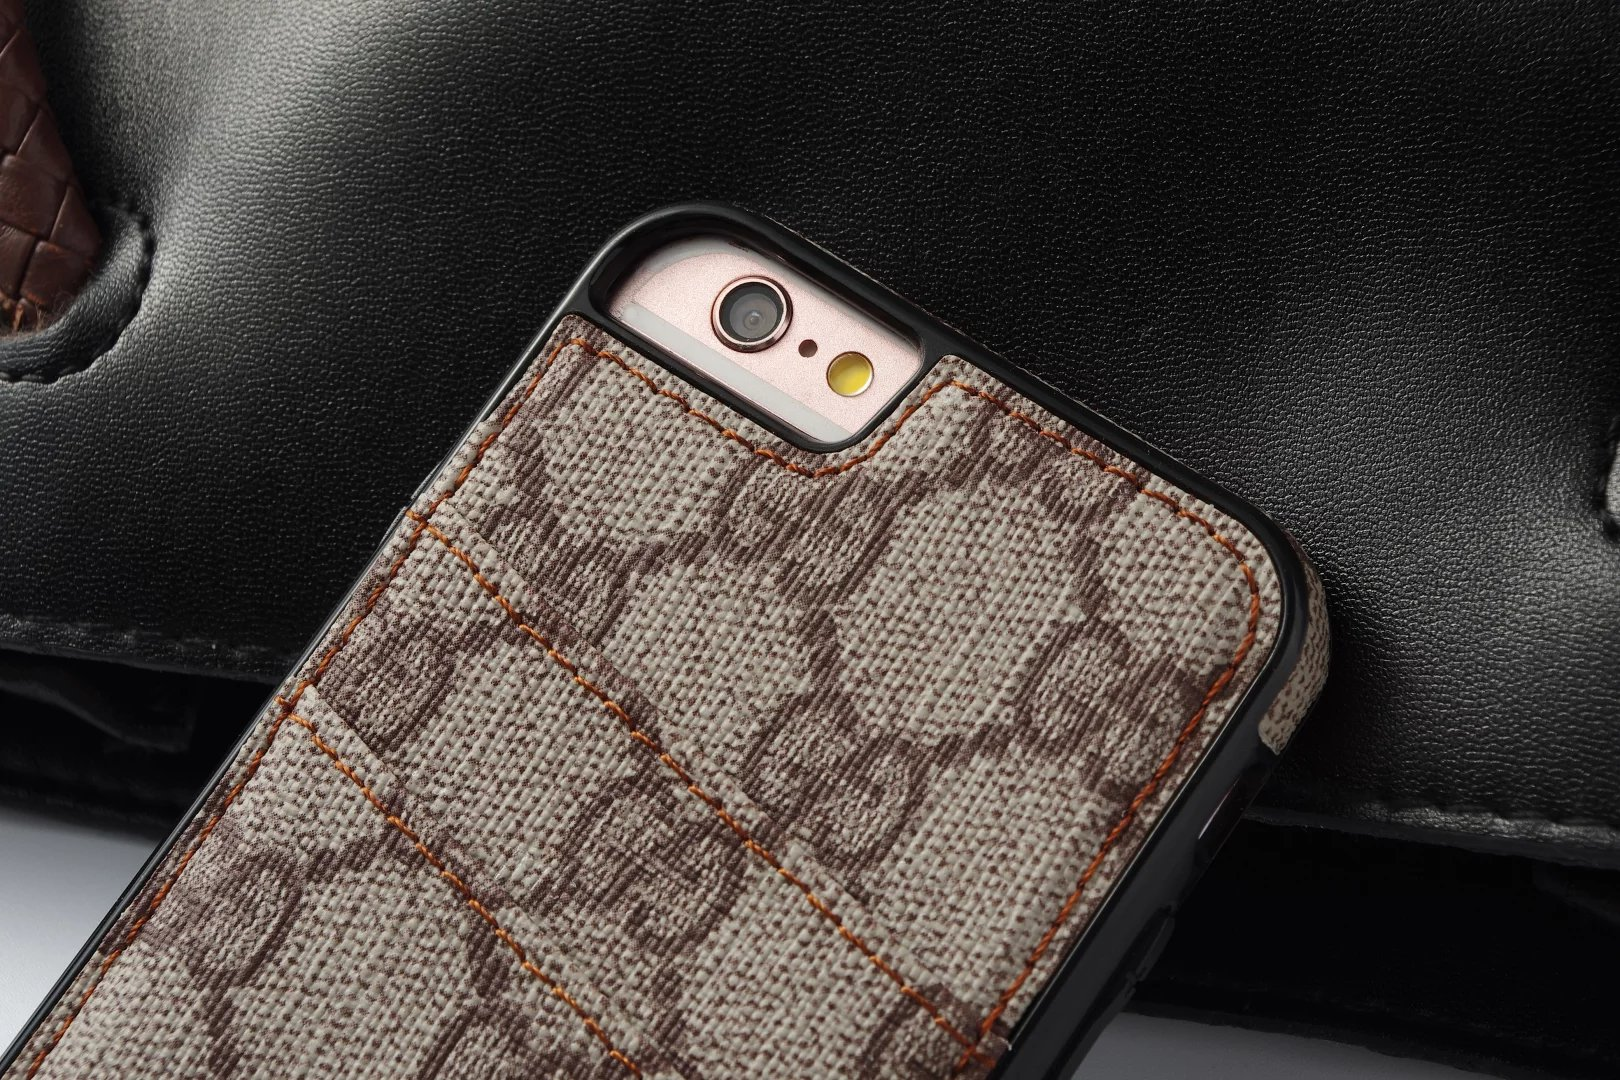 iphone 8 Plus nice cases best iphone 8 Plus protective case Louis Vuitton iphone 8 Plus case phone caes cell phone covers cheap best cases iphone 8 Plus phone cases for iPhone 8 Plus phone cases online make your own cell phone case online